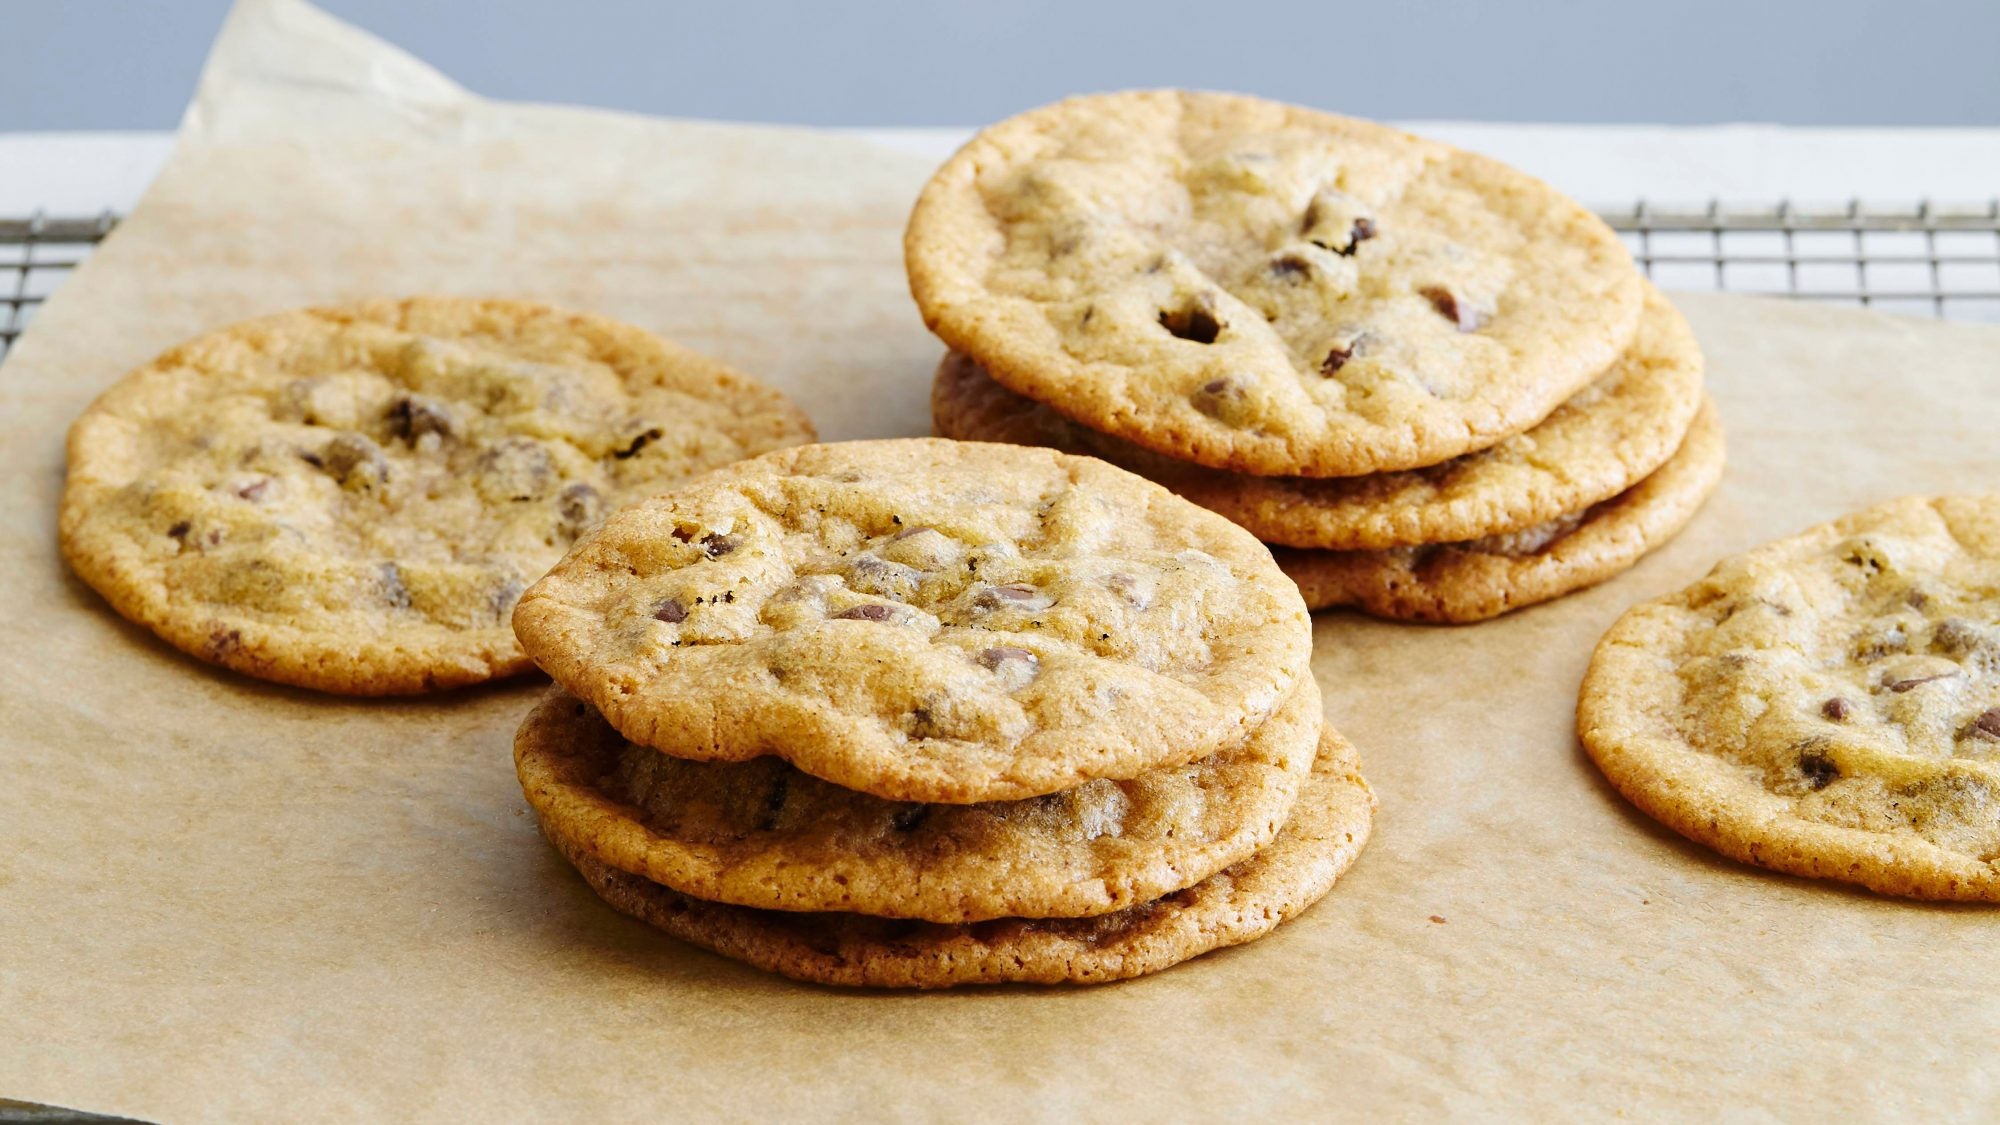 201305-FT-milk-chocolate-chip-cookies.jpg